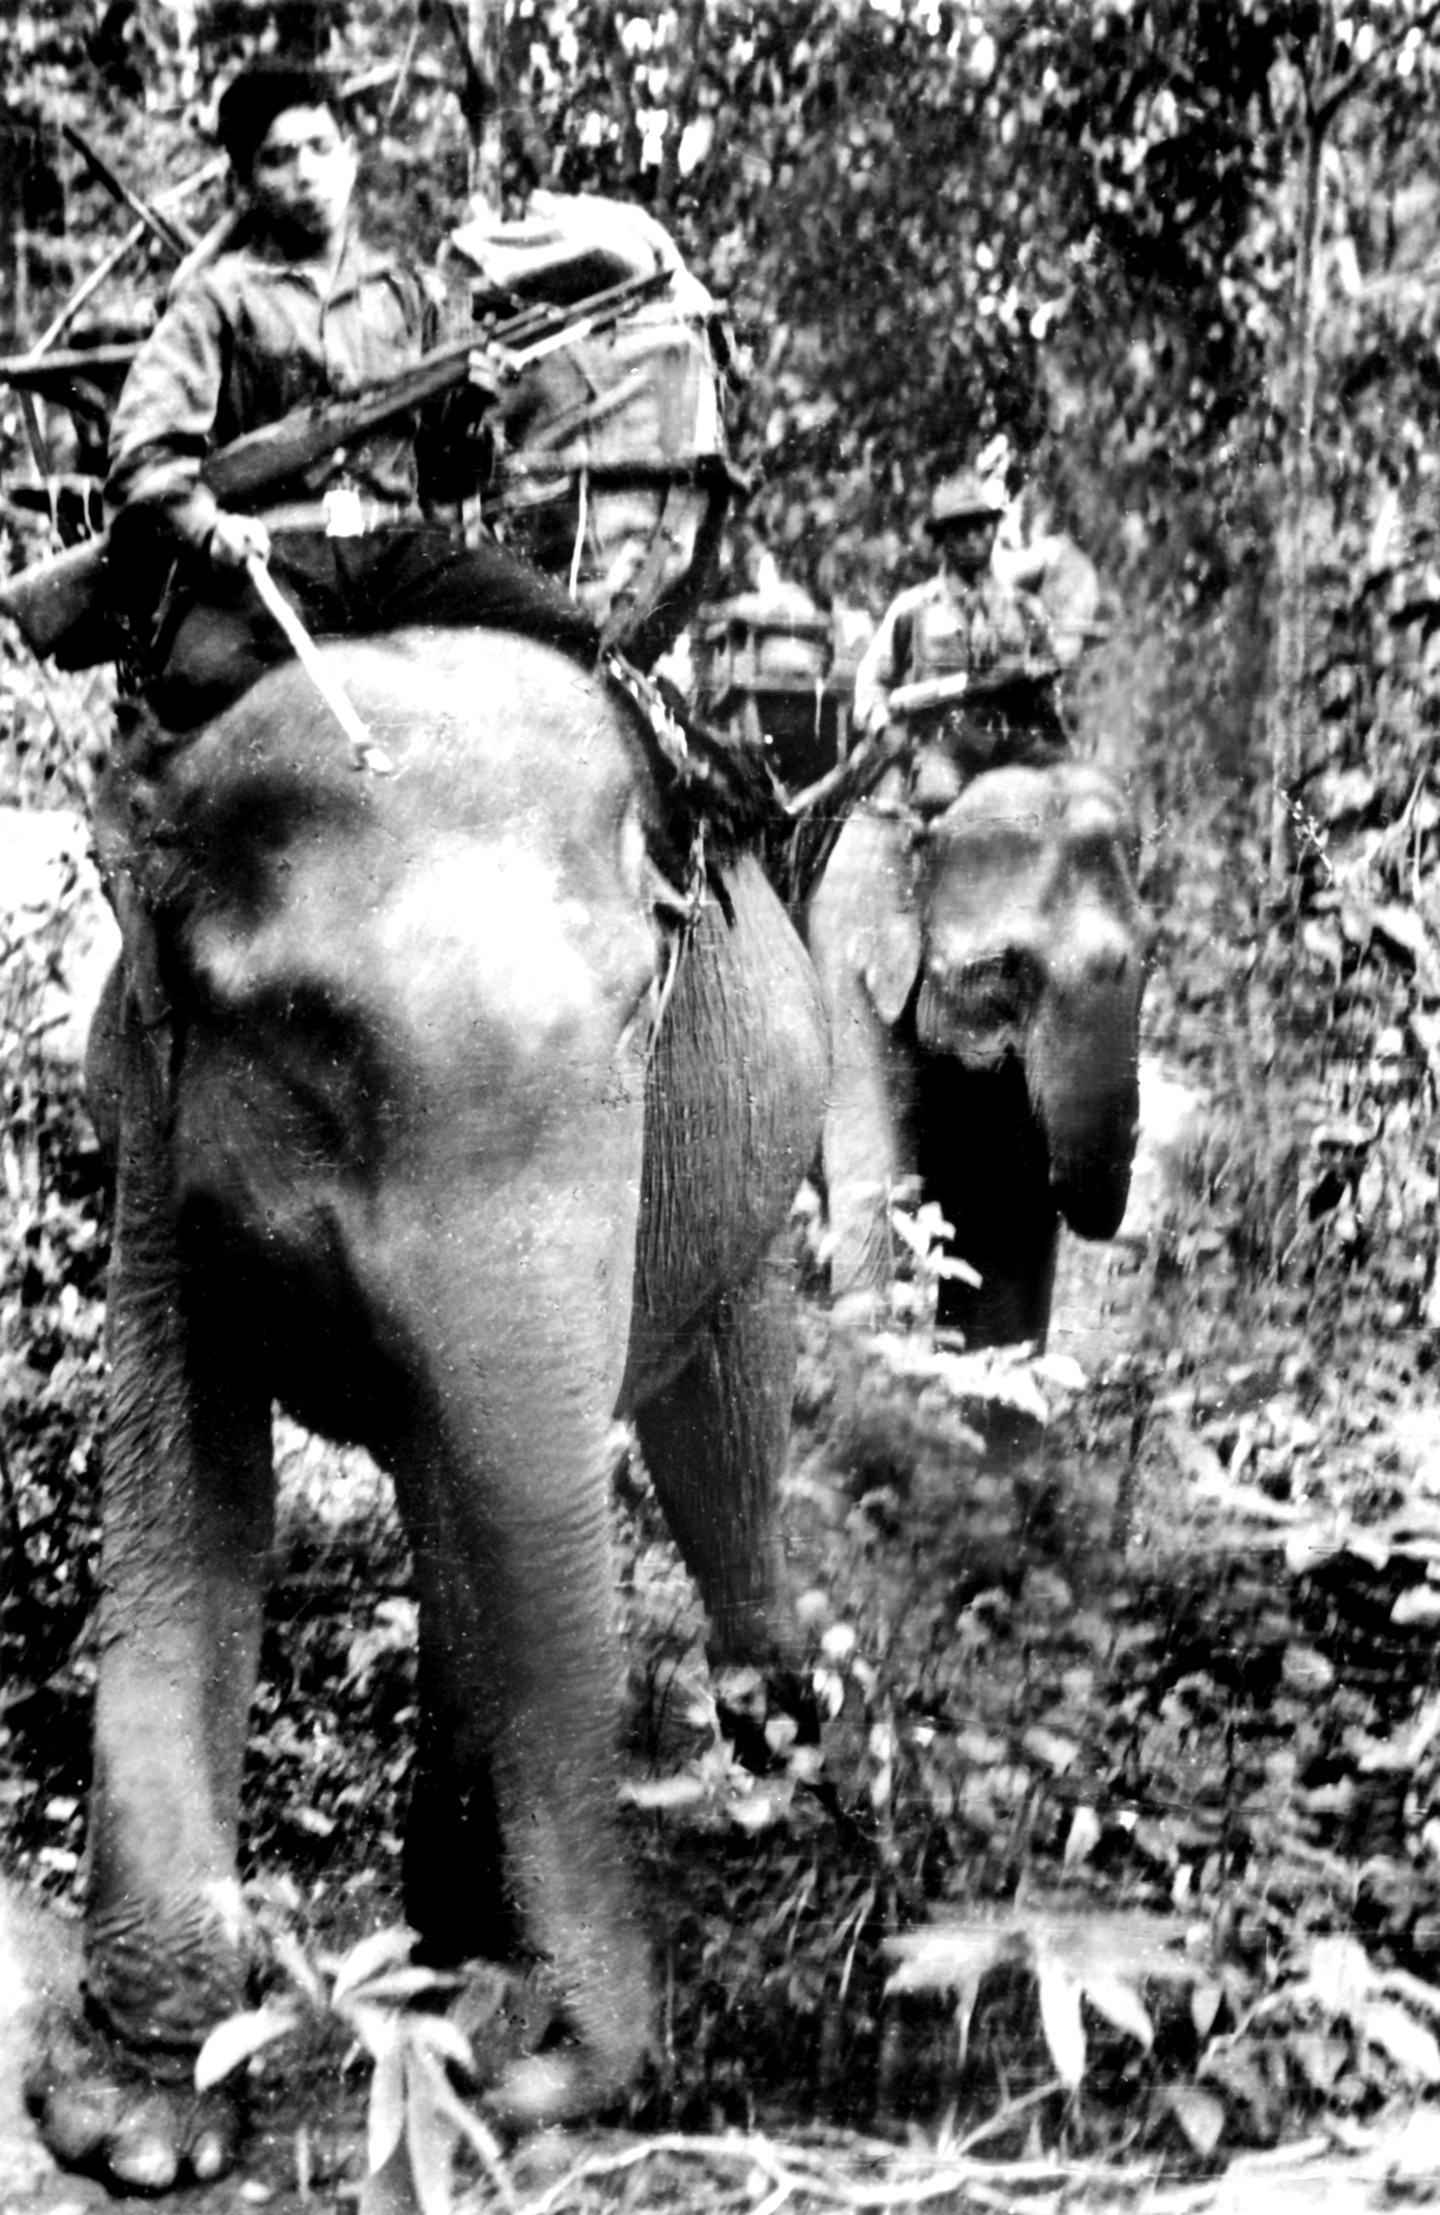 Viet Cong on elephants